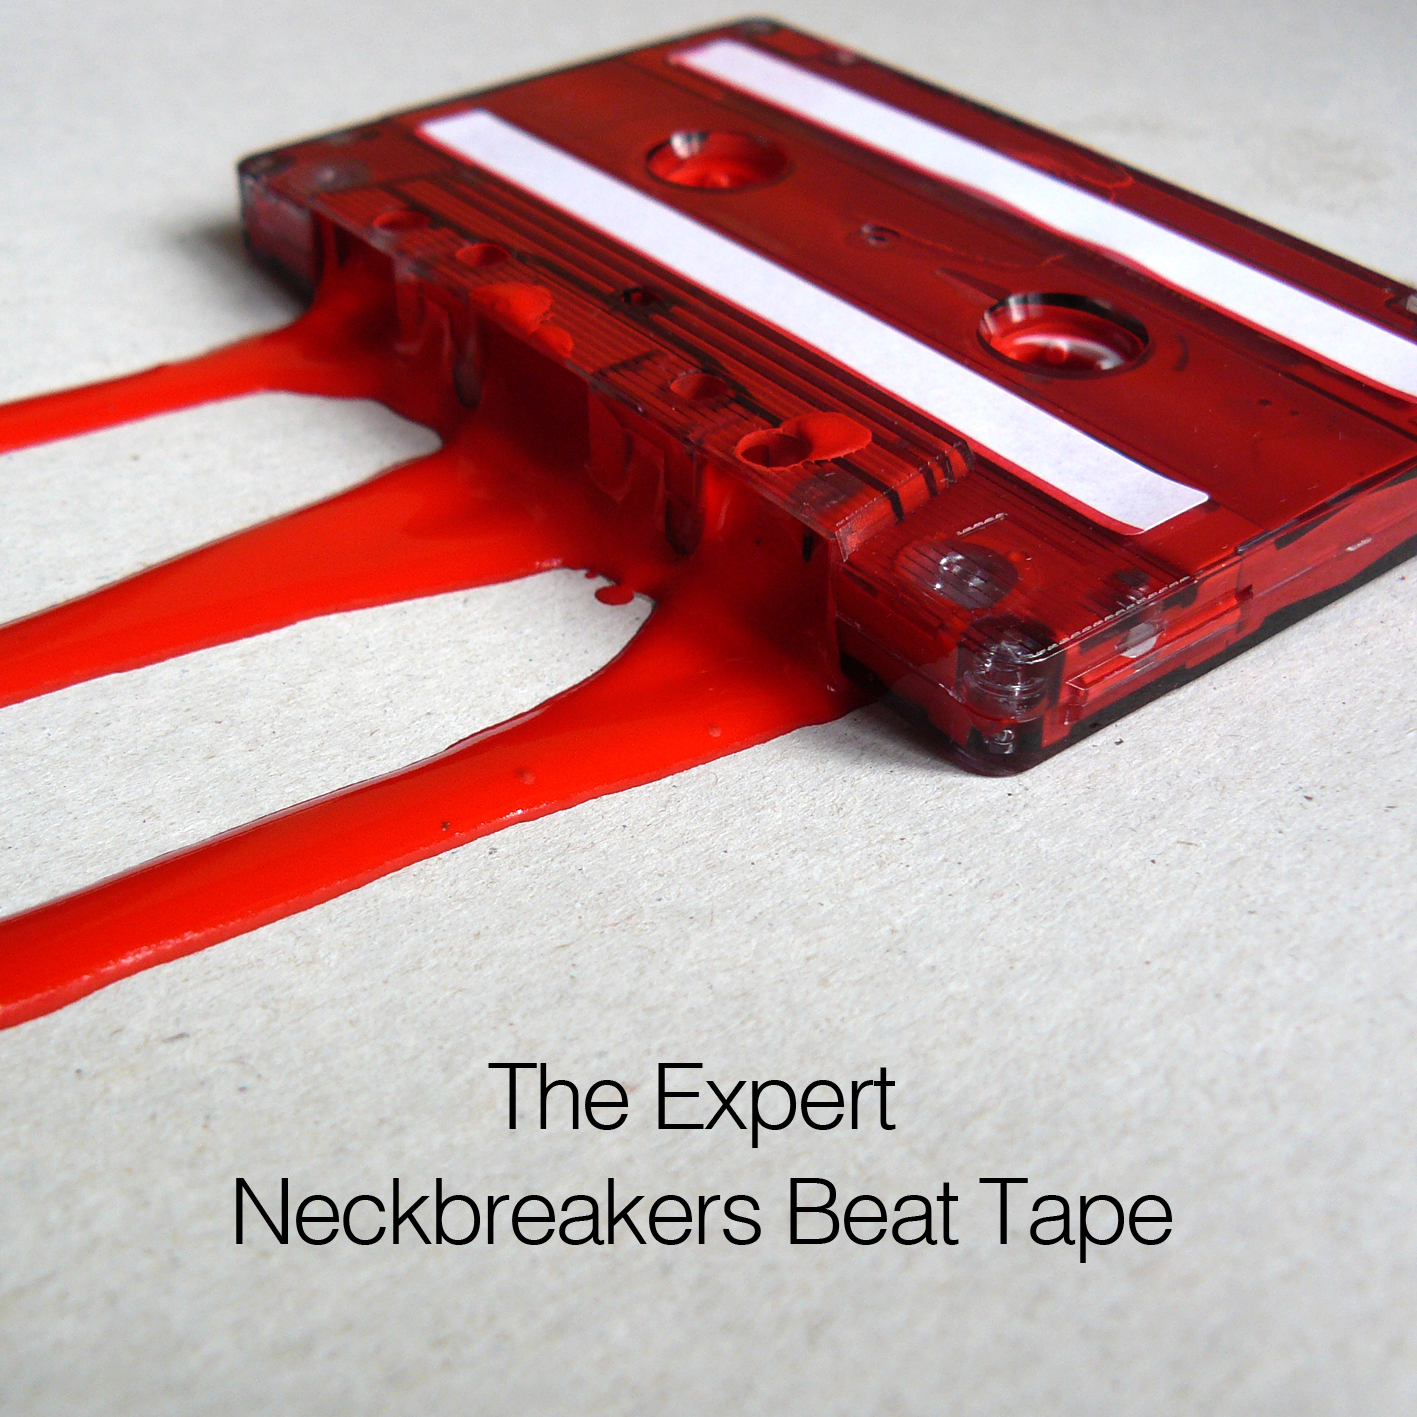 The Expert - Neckbreakers beat tape (Rhythm22)